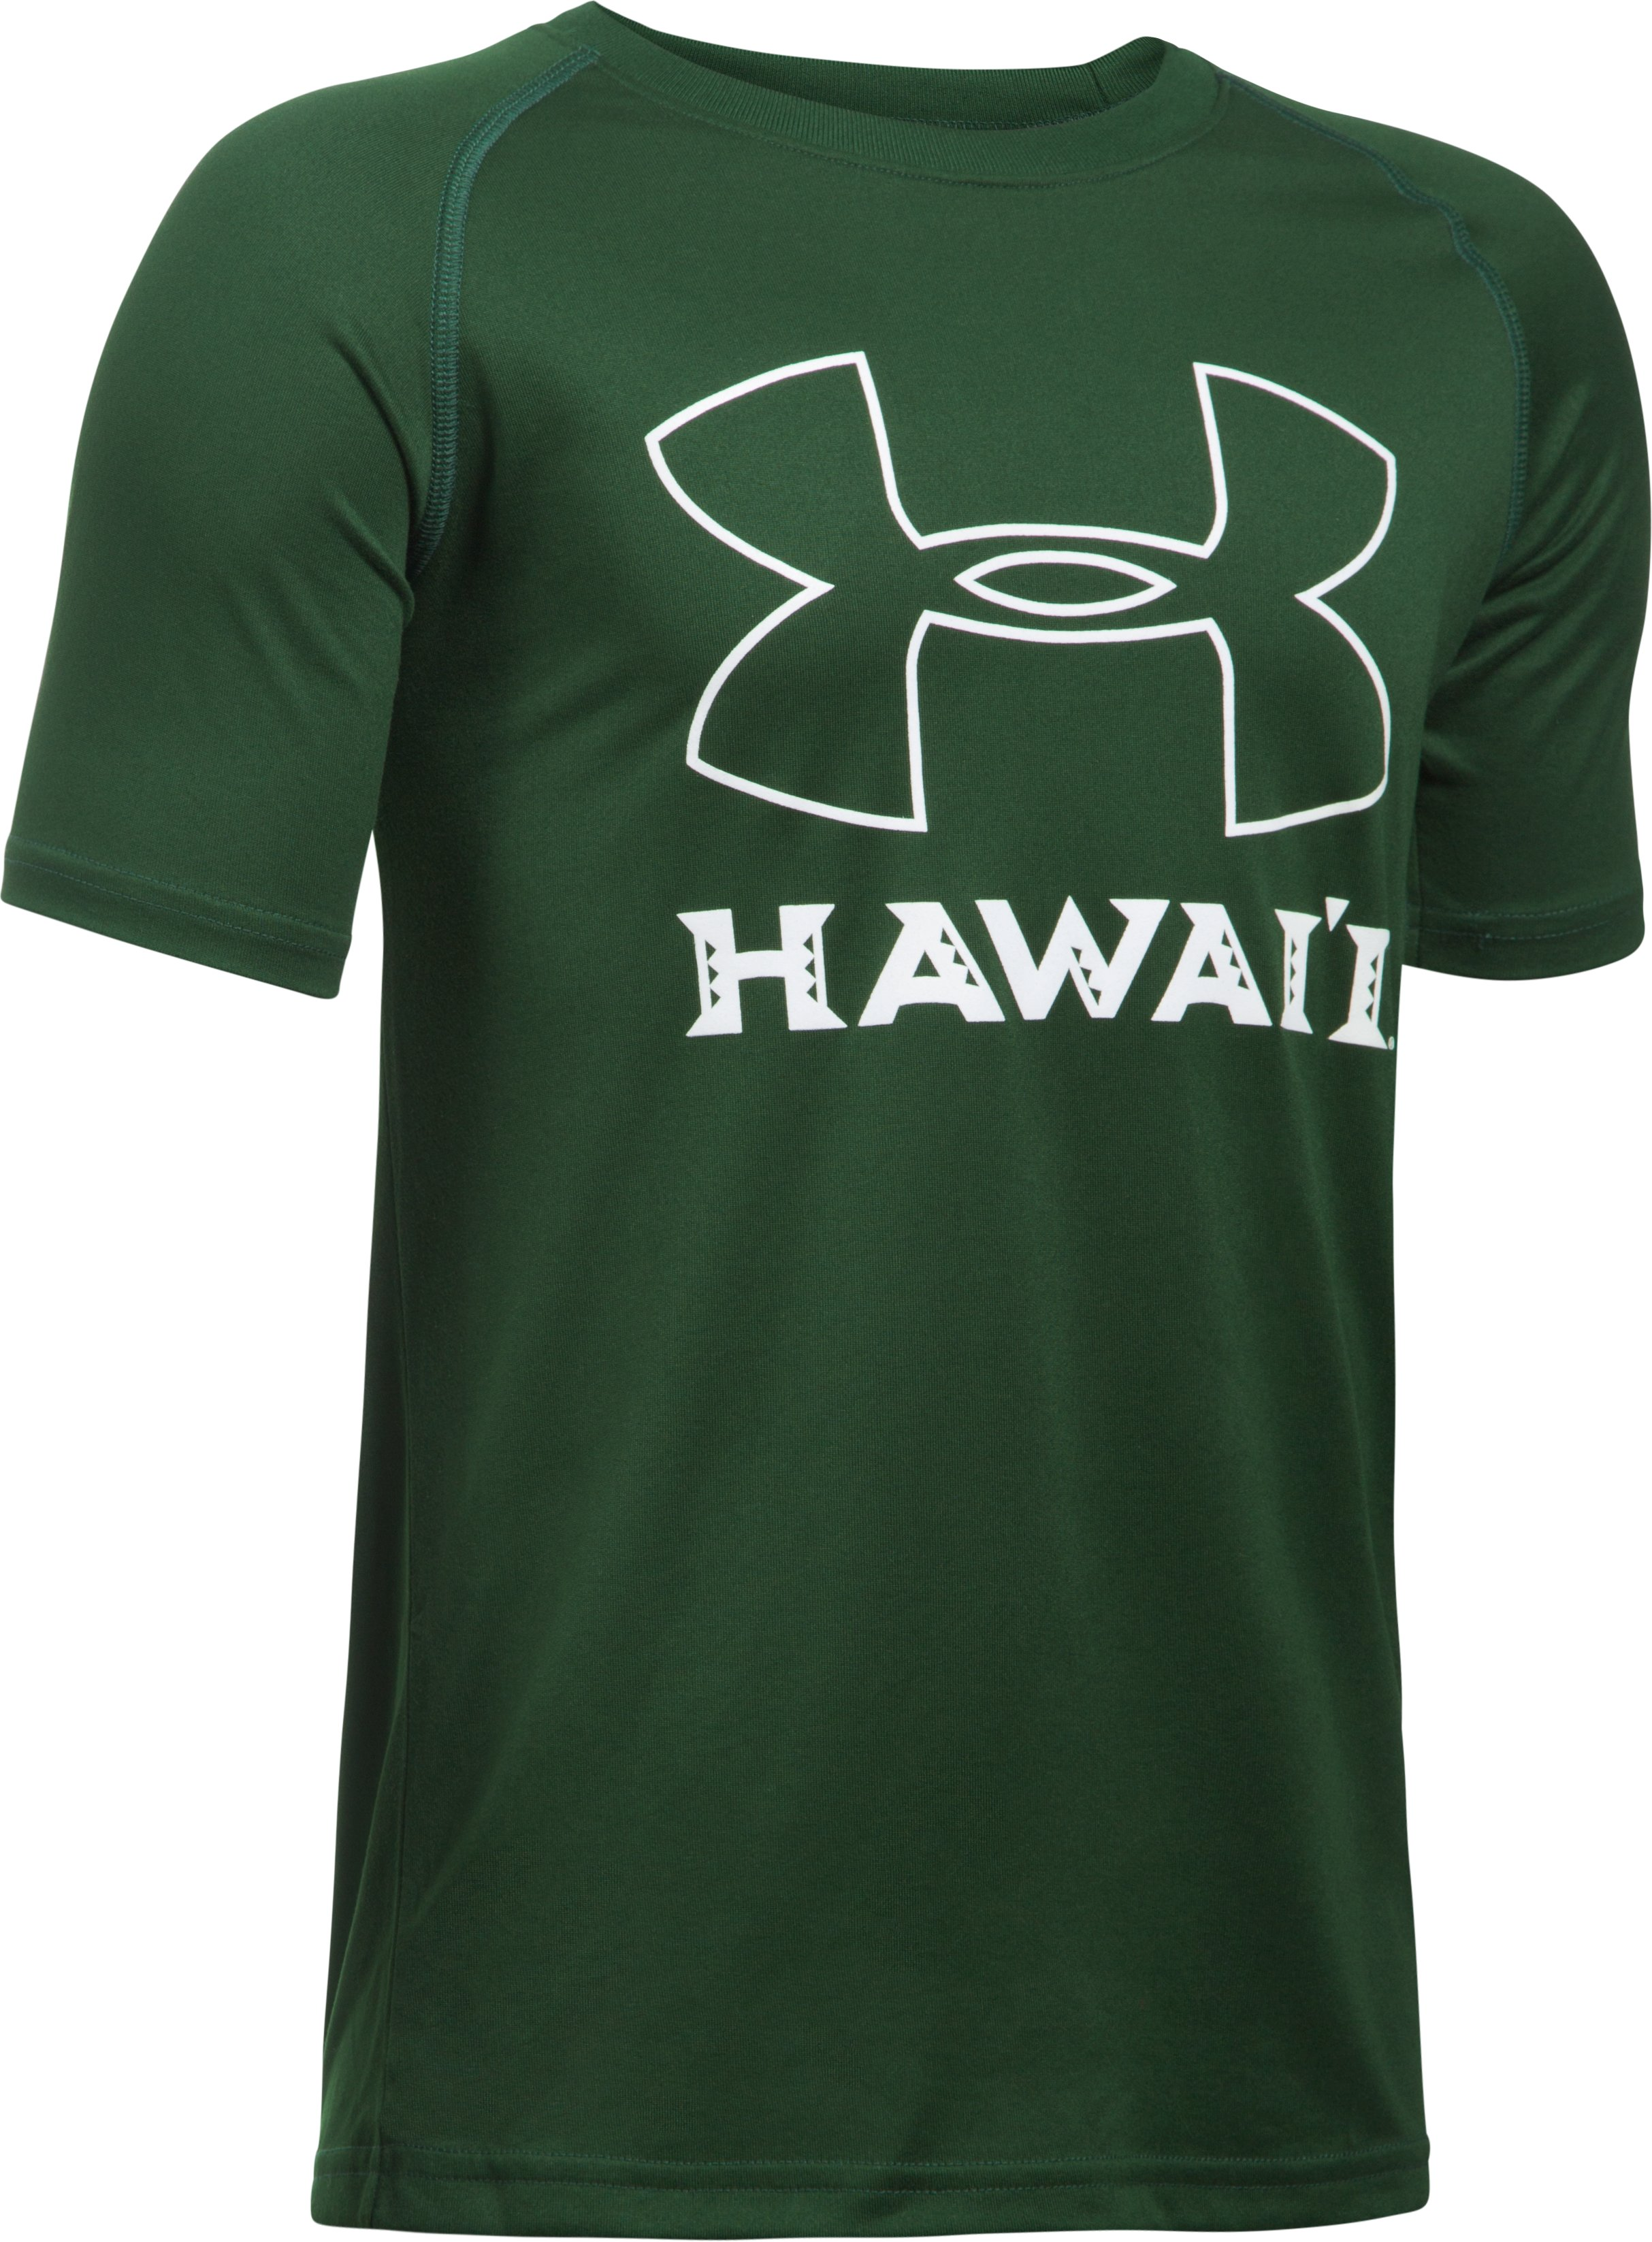 Boys' Hawai'i UA Tech™ T-Shirt, Forest Green,